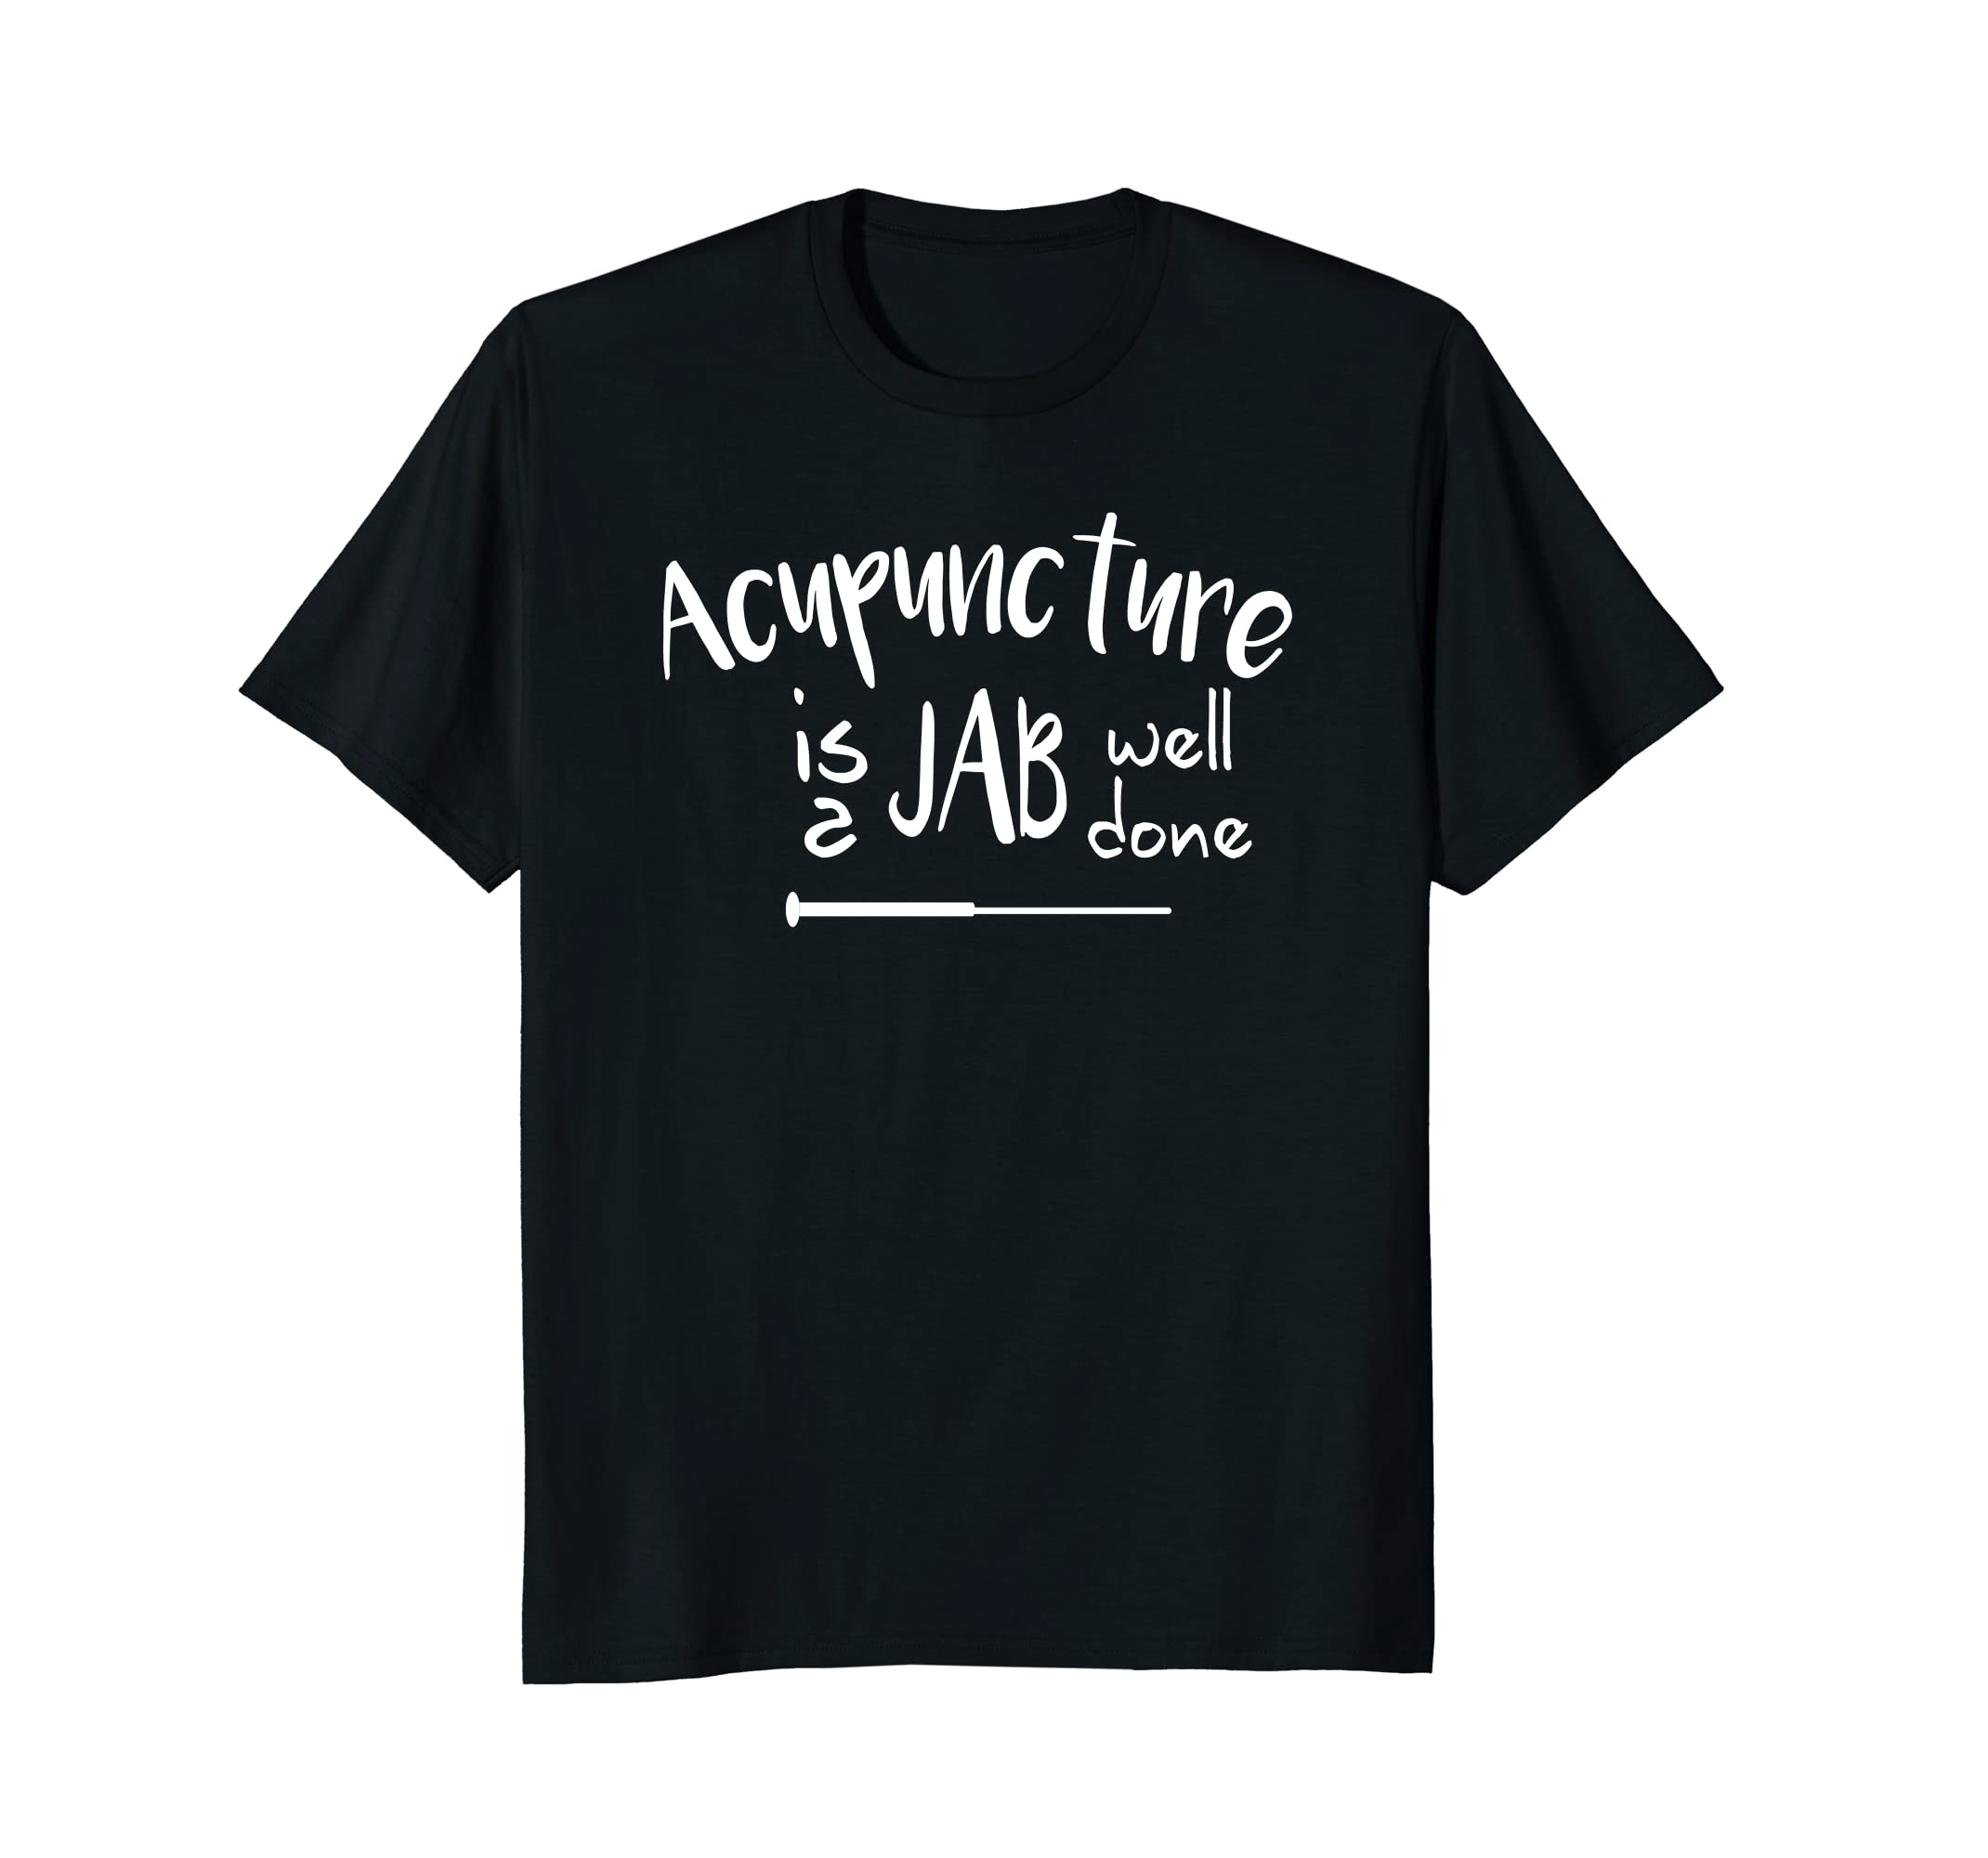 Acupuncture Jab Well Done Shirt and Gift for Acupuncturists